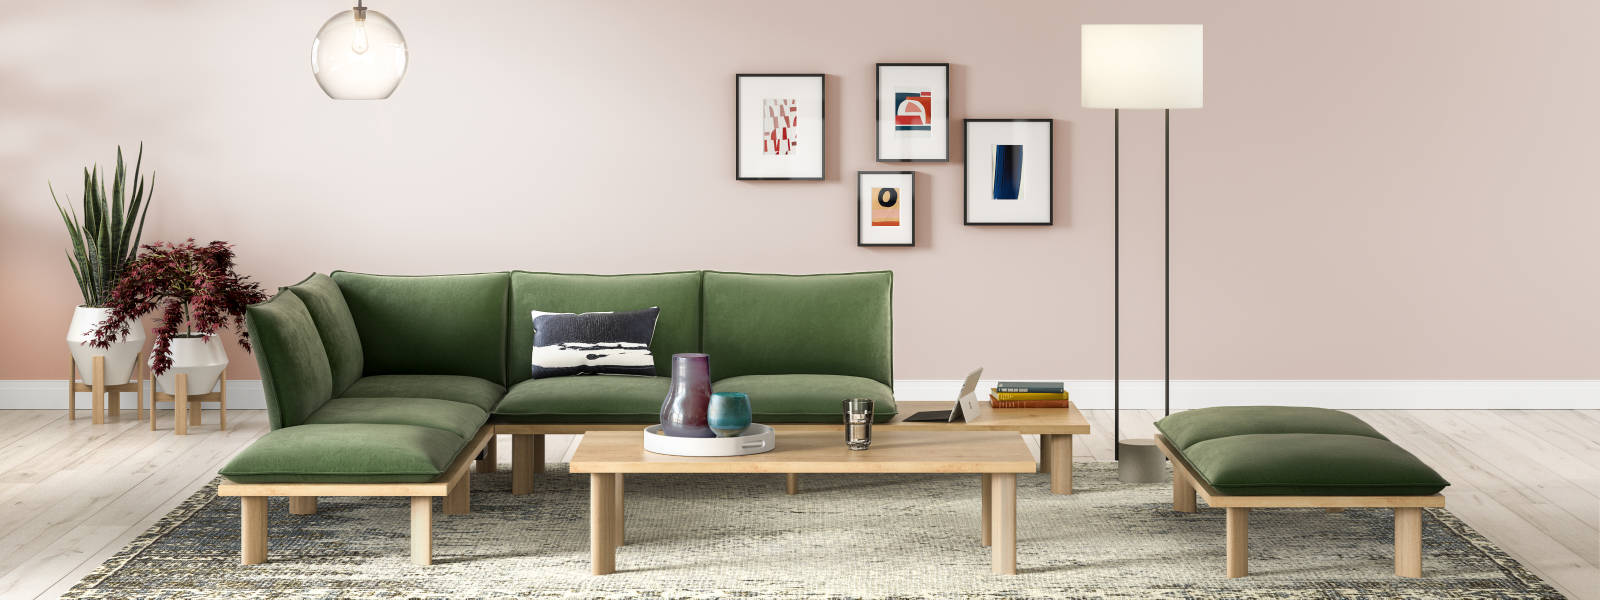 Top Three Trending Office Colors for 2020: How to create a fresh space using color.